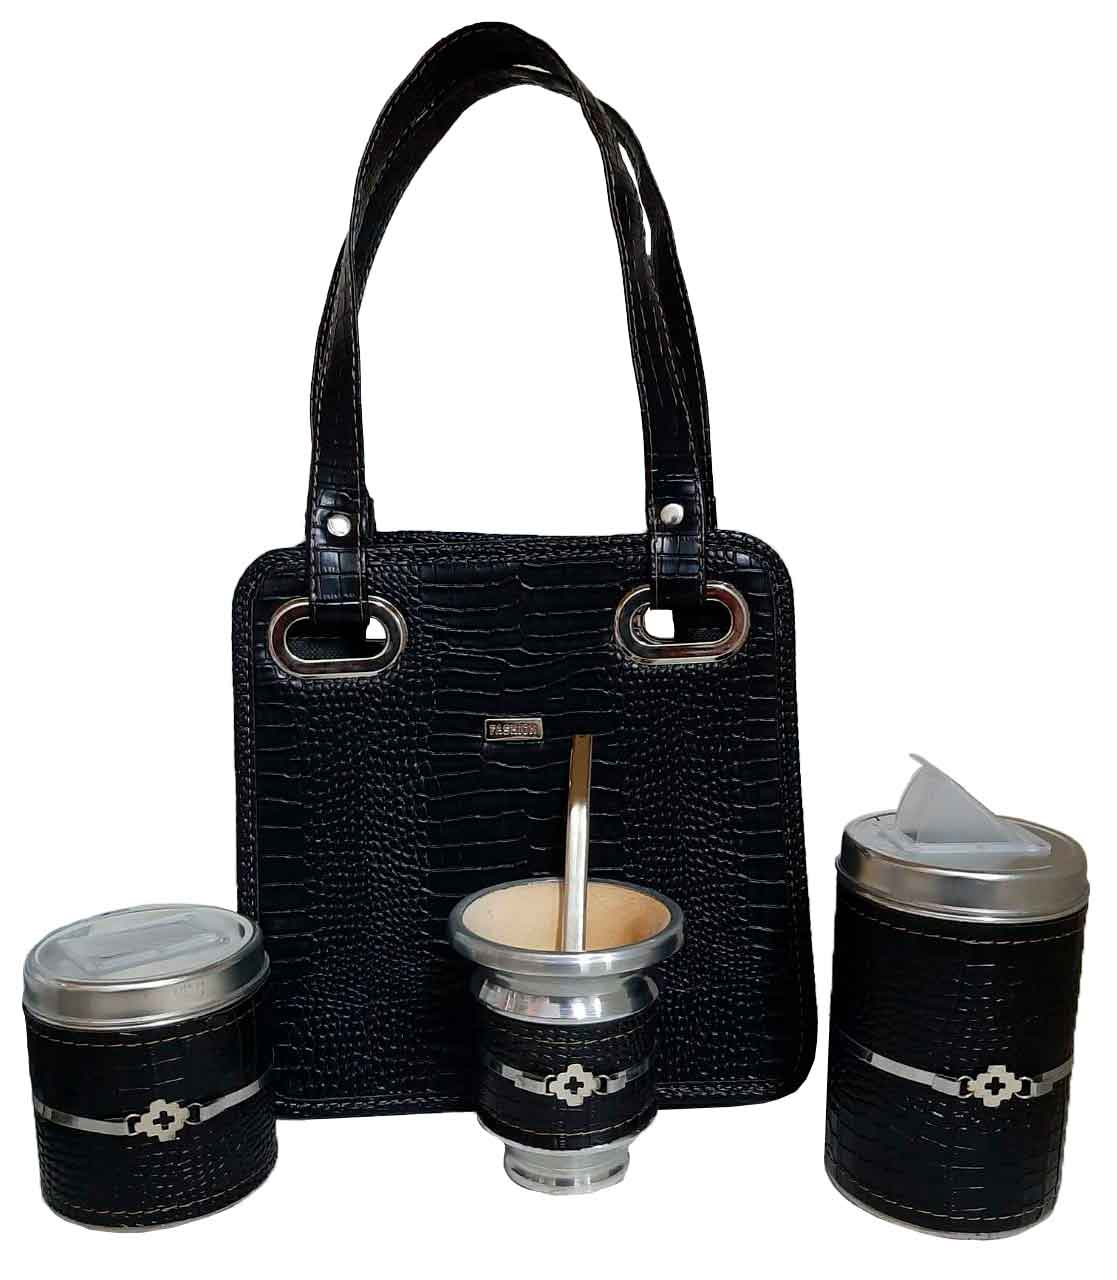 Set matero con mini cartera negra